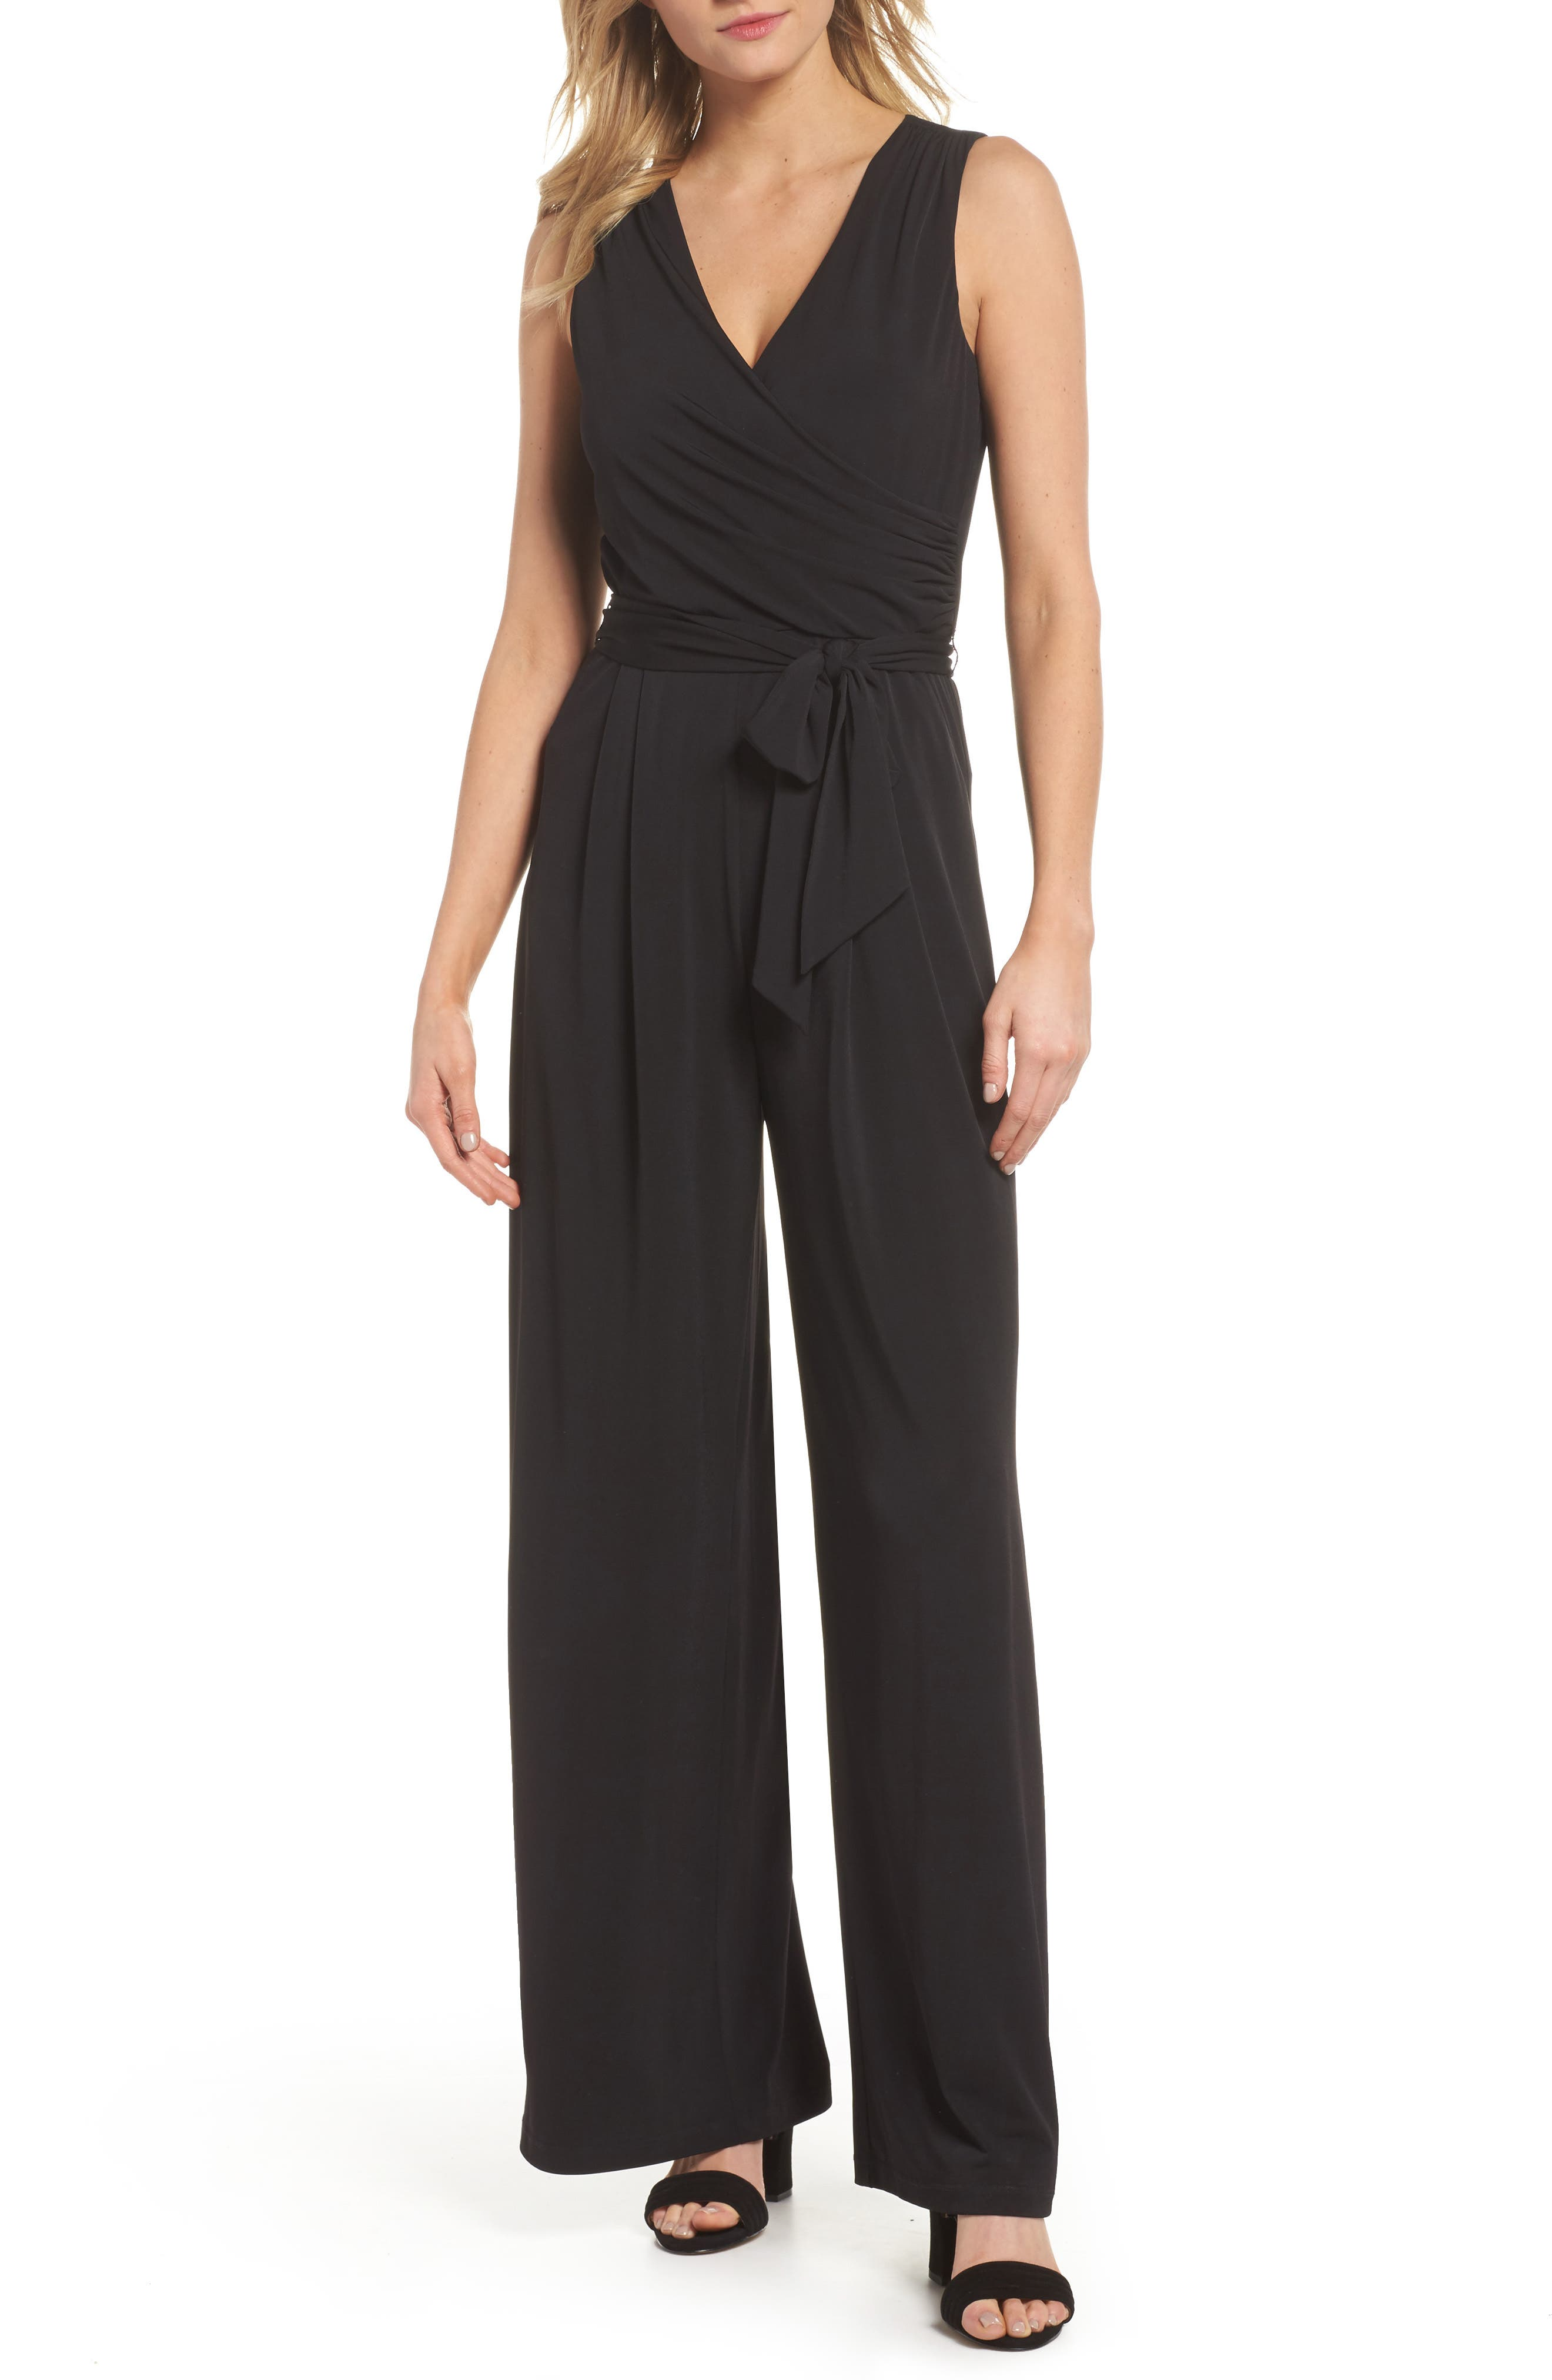 ELIZA J, Faux Wrap Wide Leg Jumpsuit, Main thumbnail 1, color, BLACK